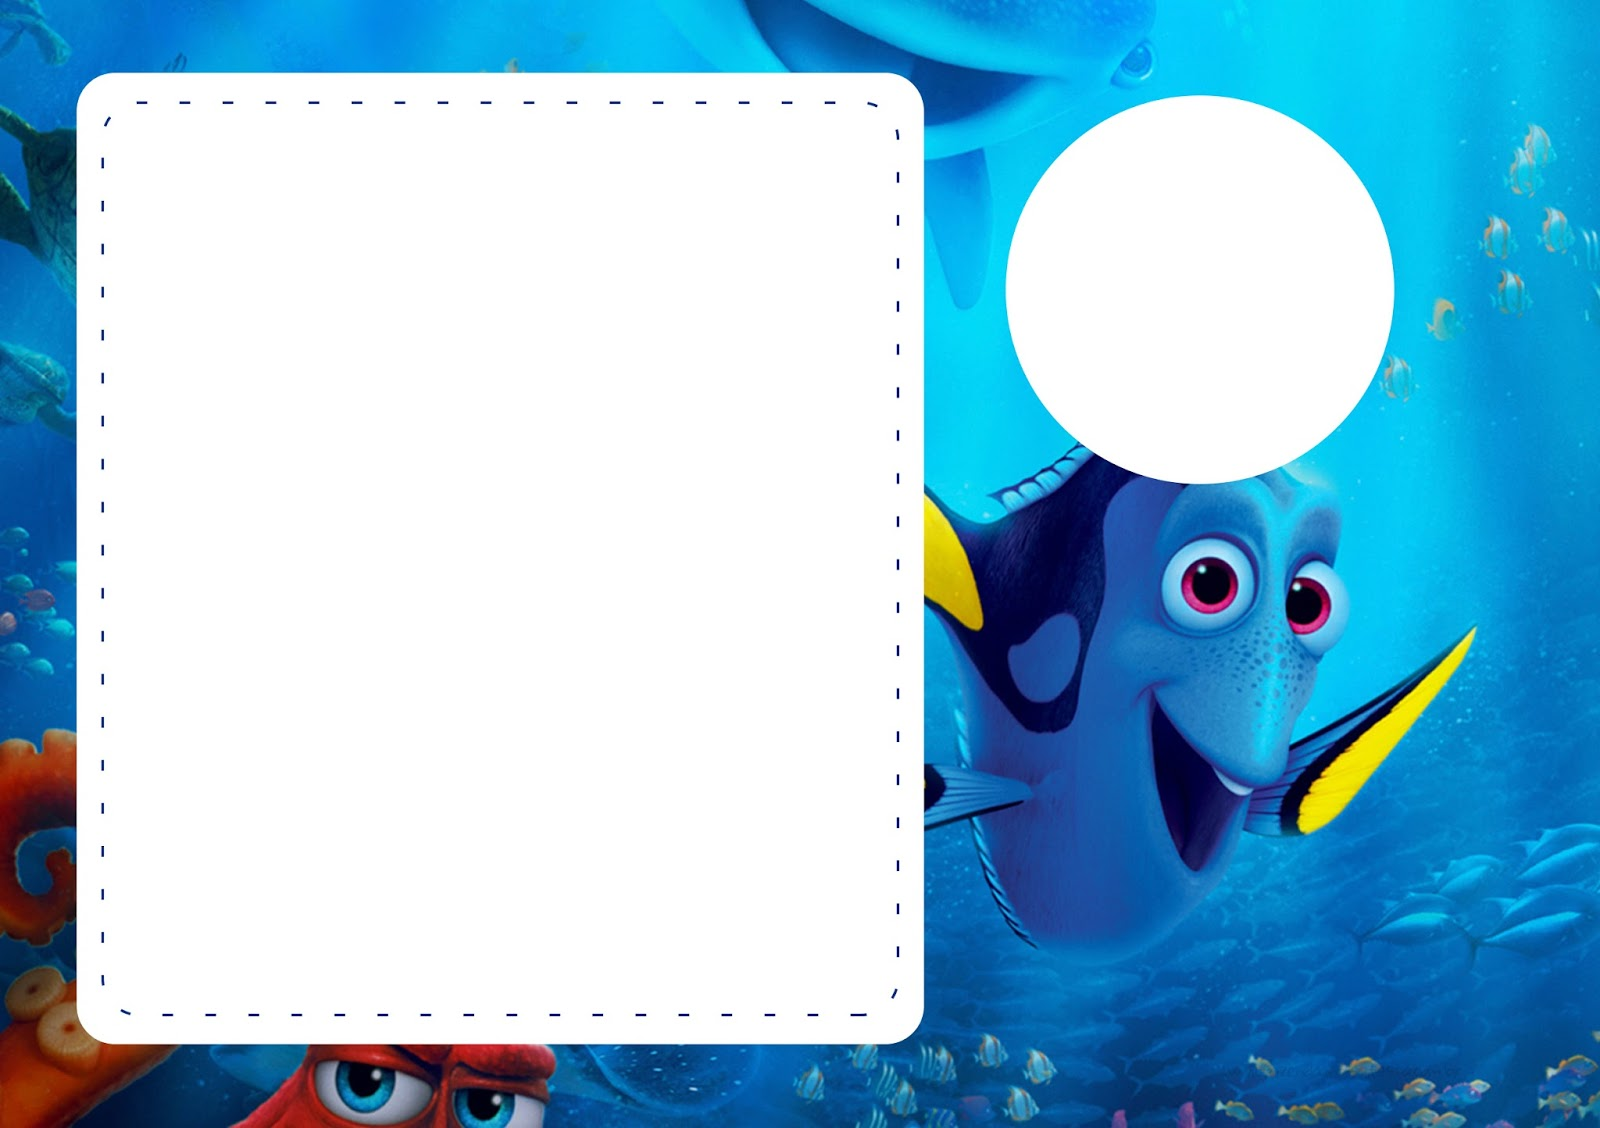 Finding Dory: Free Printable Invitations. | Oh My Fiesta! in english